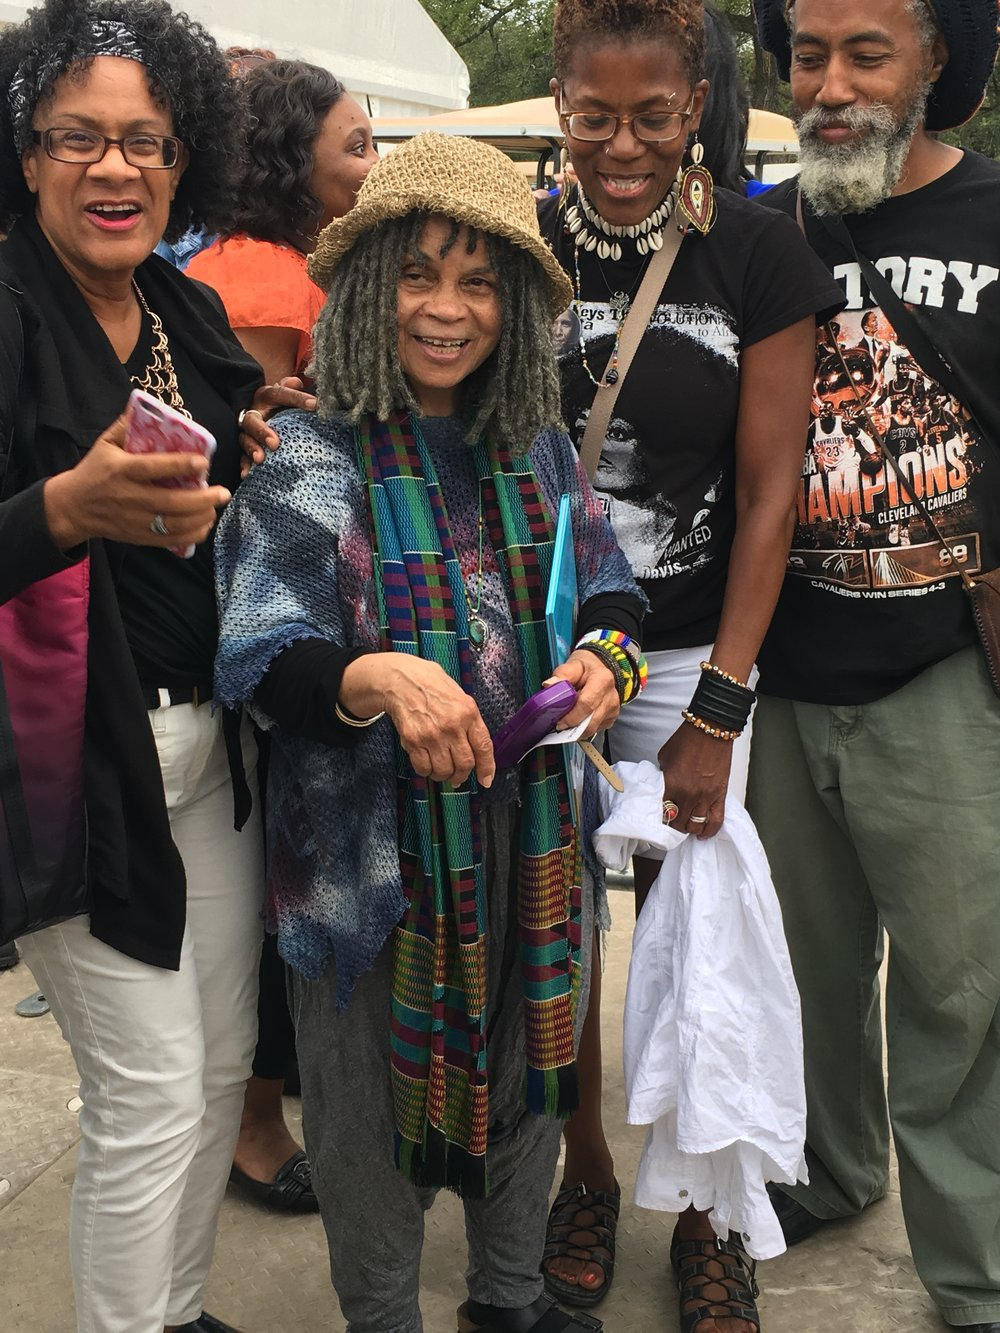 The Poet Sonia Sanchez in the middle